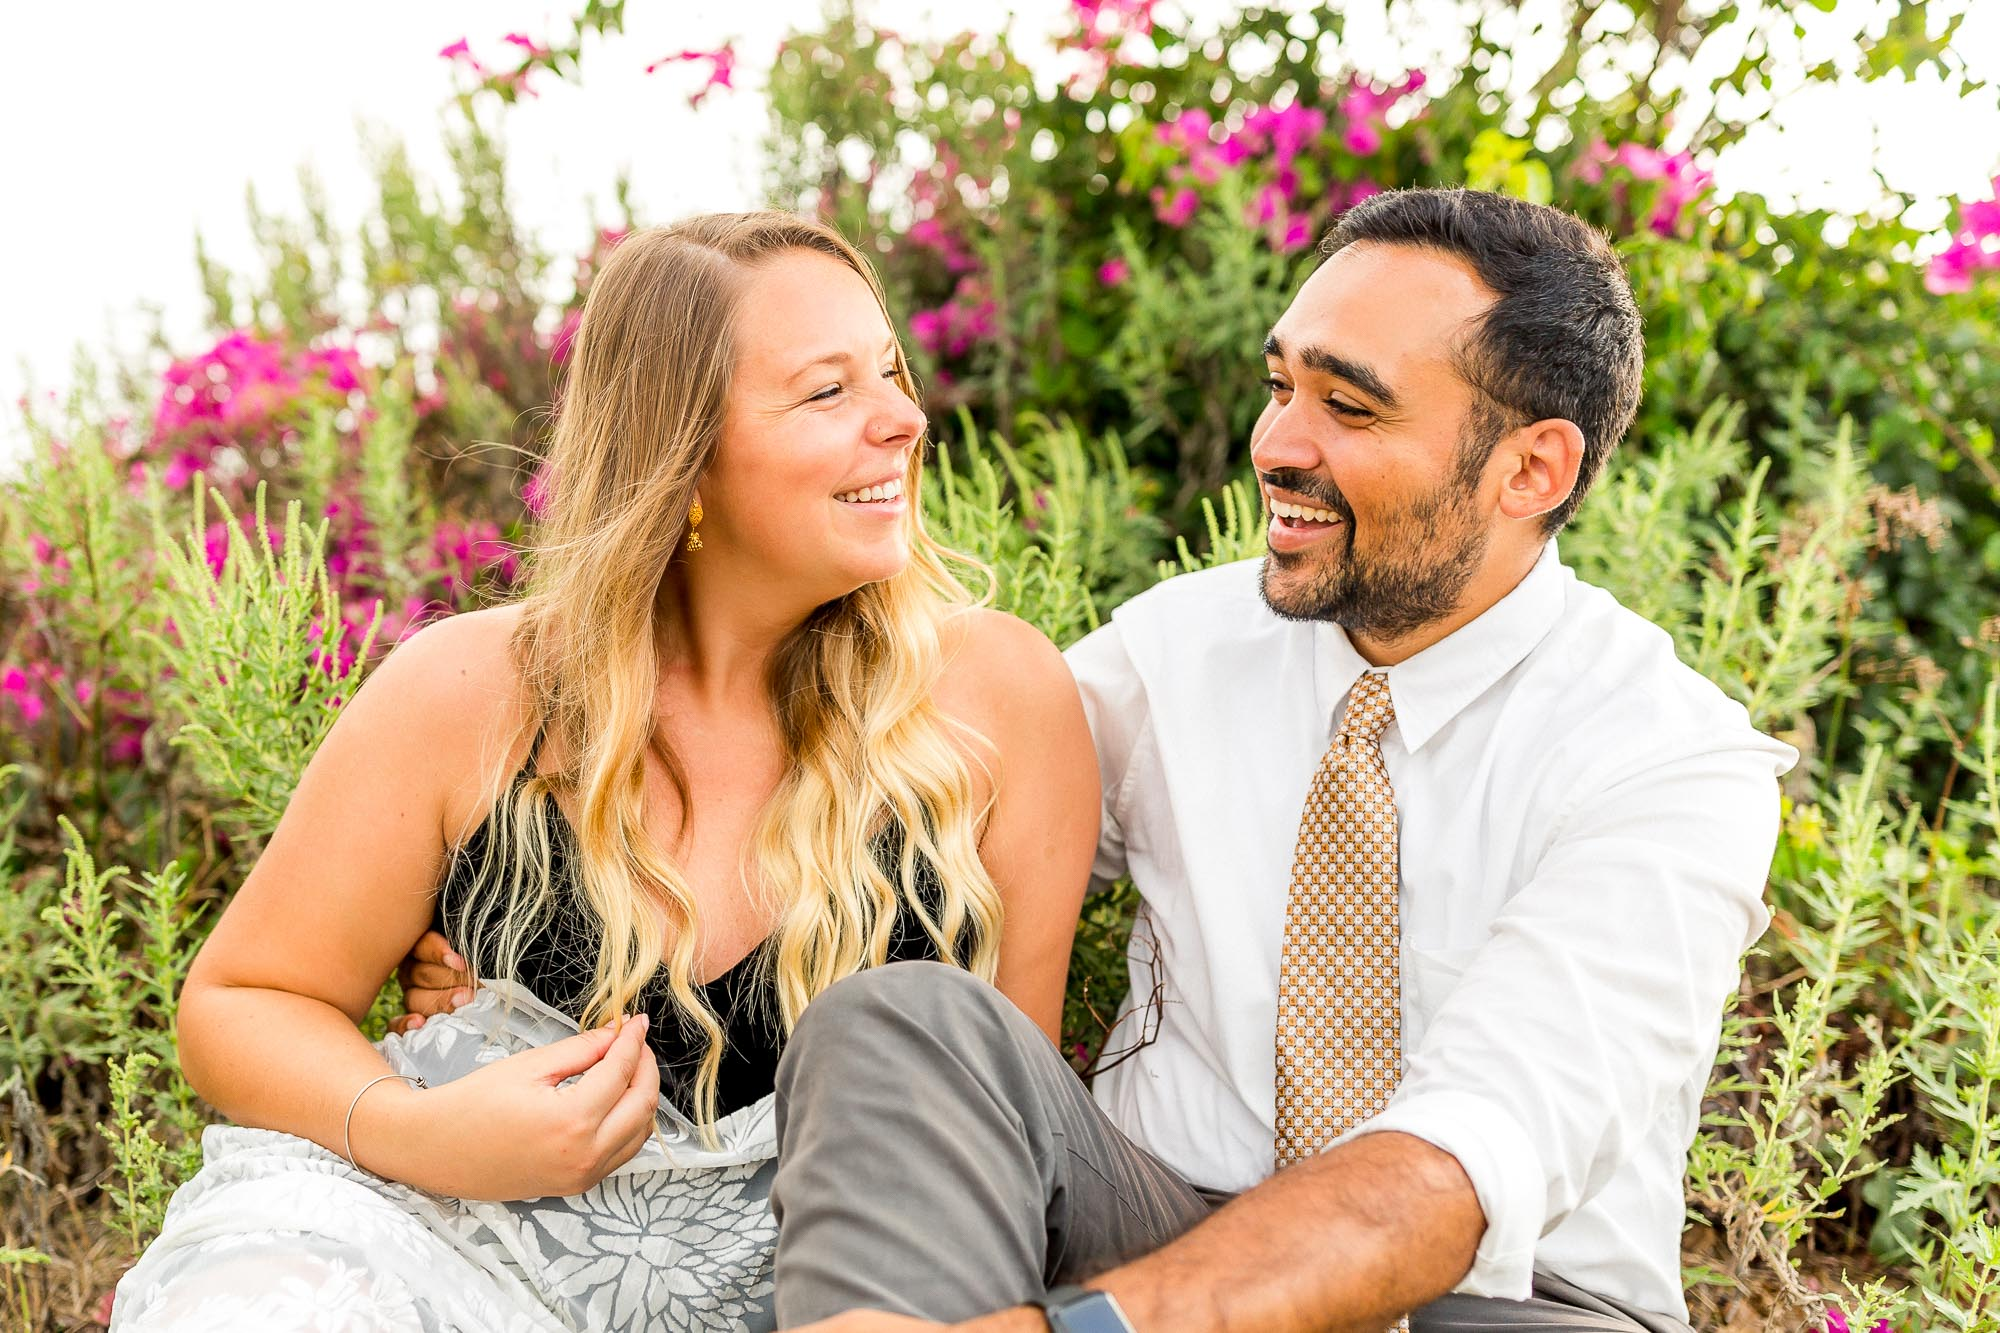 Justine_Puneet_Cardiff_Engagement_Session_047.jpg